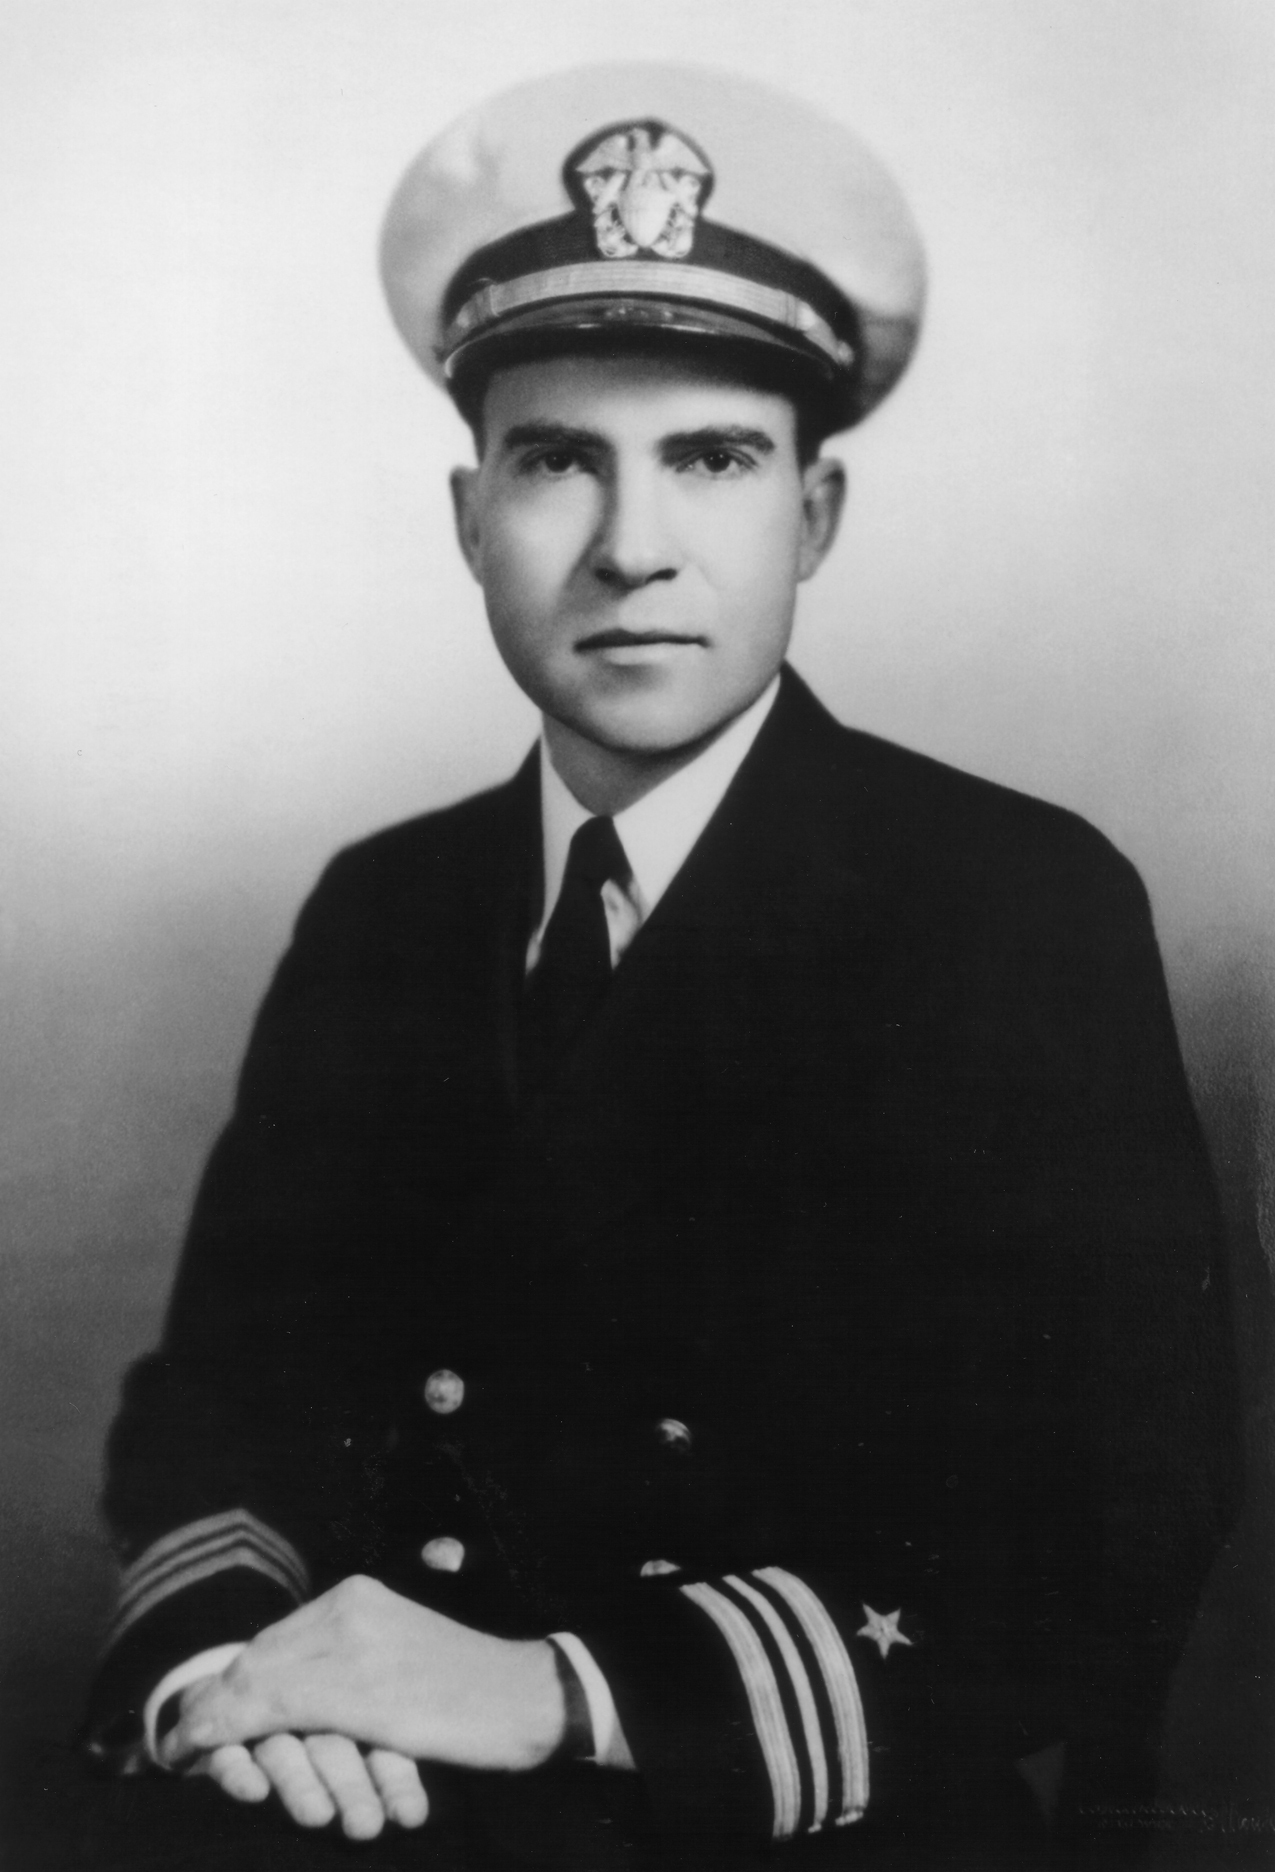 Lieutenant Commander Richard Nixon of the United States Navy, 1945